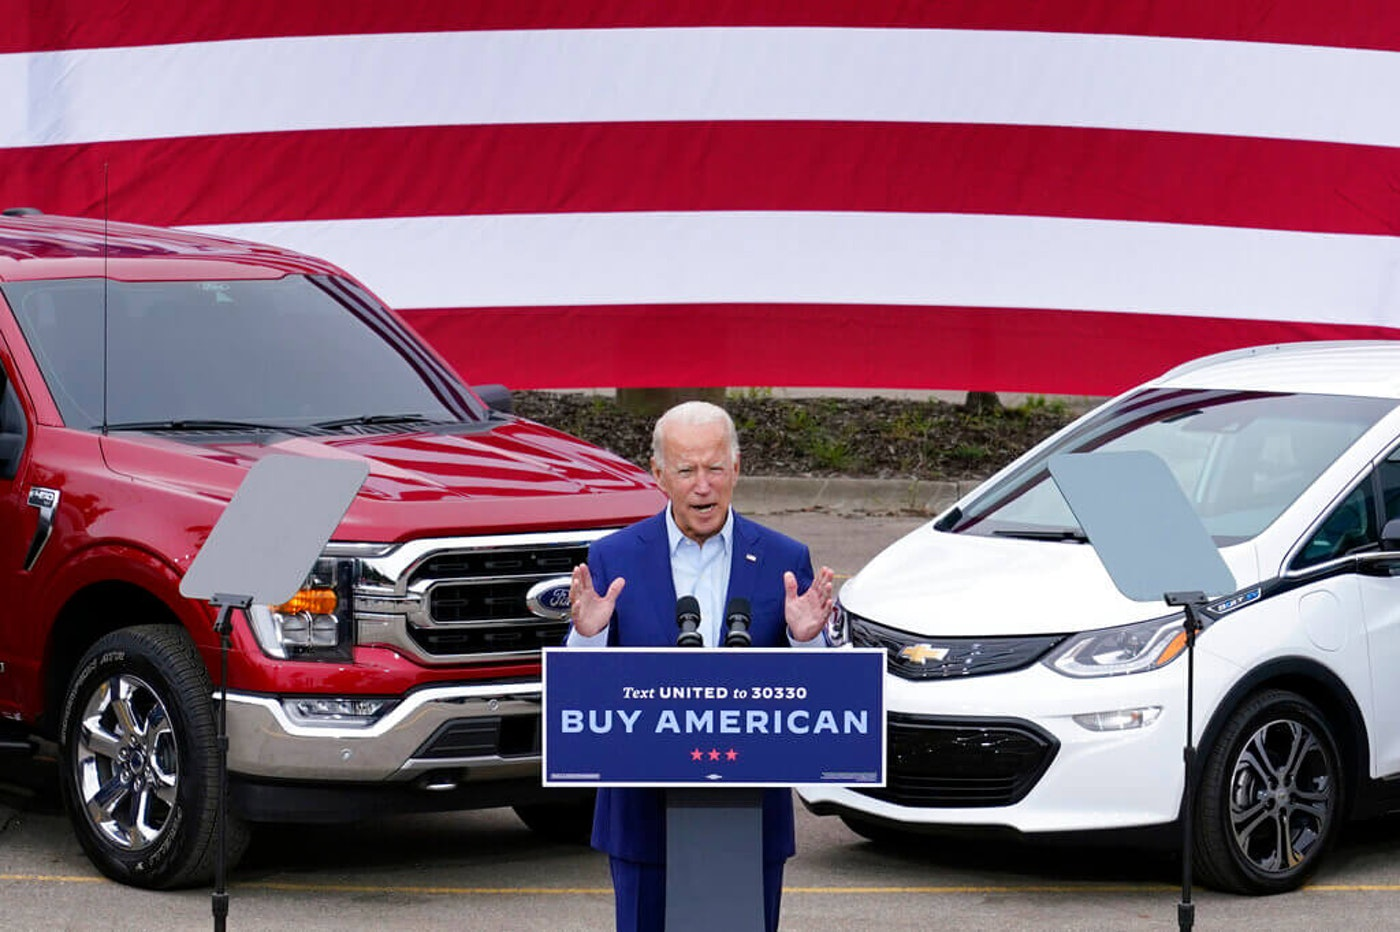 Democratic presidential candidate former Vice President Joe Biden speaks during a campaign event on manufacturing American products at UAW Region 1 headquarters in Warren, Mich., Wednesday, Sept. 9, 2020. (AP Photo/Patrick Semansky)